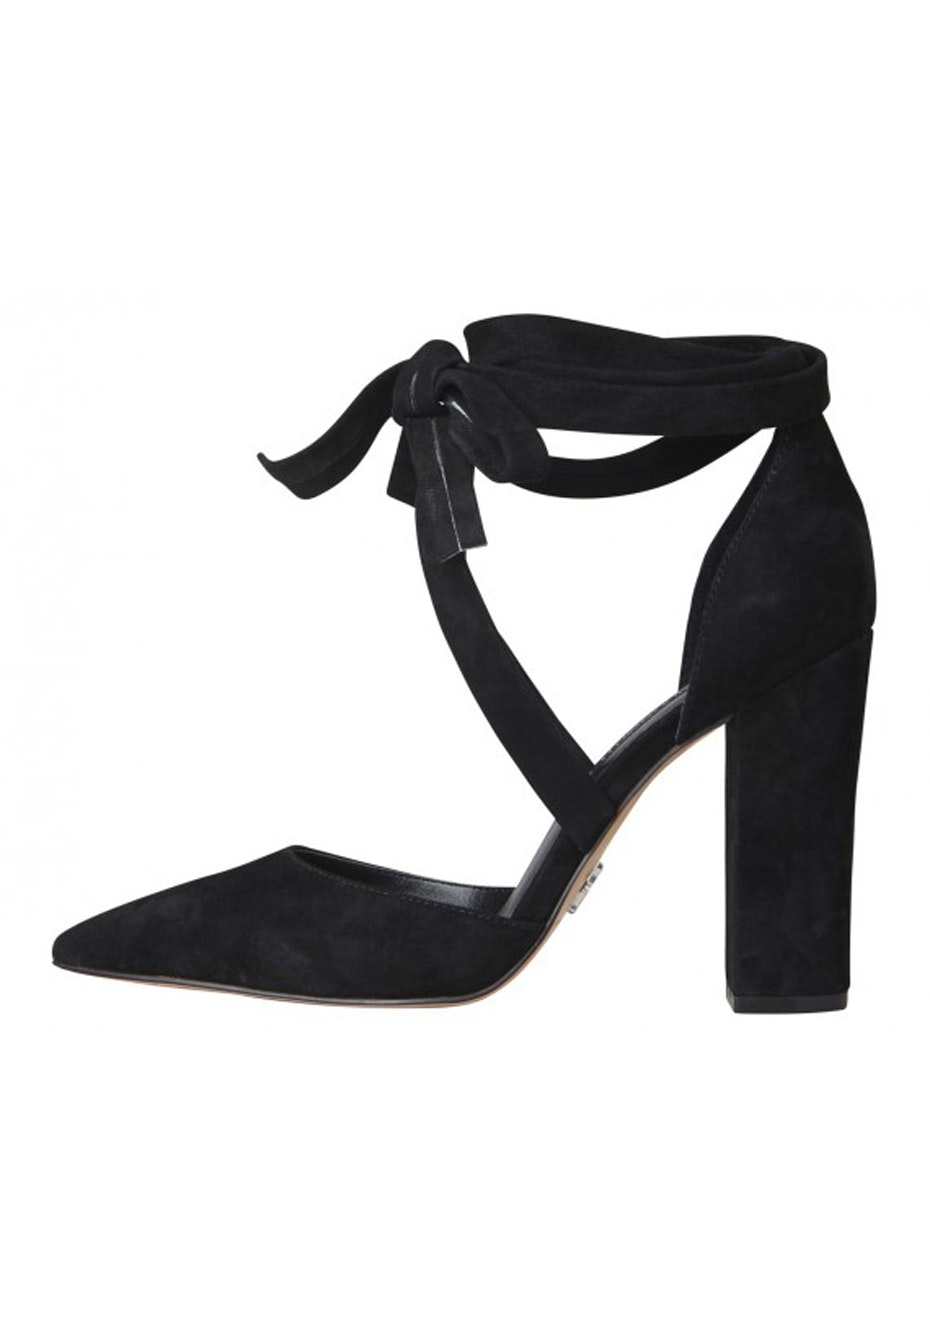 Windsor Smith - Bryony - Black Suede